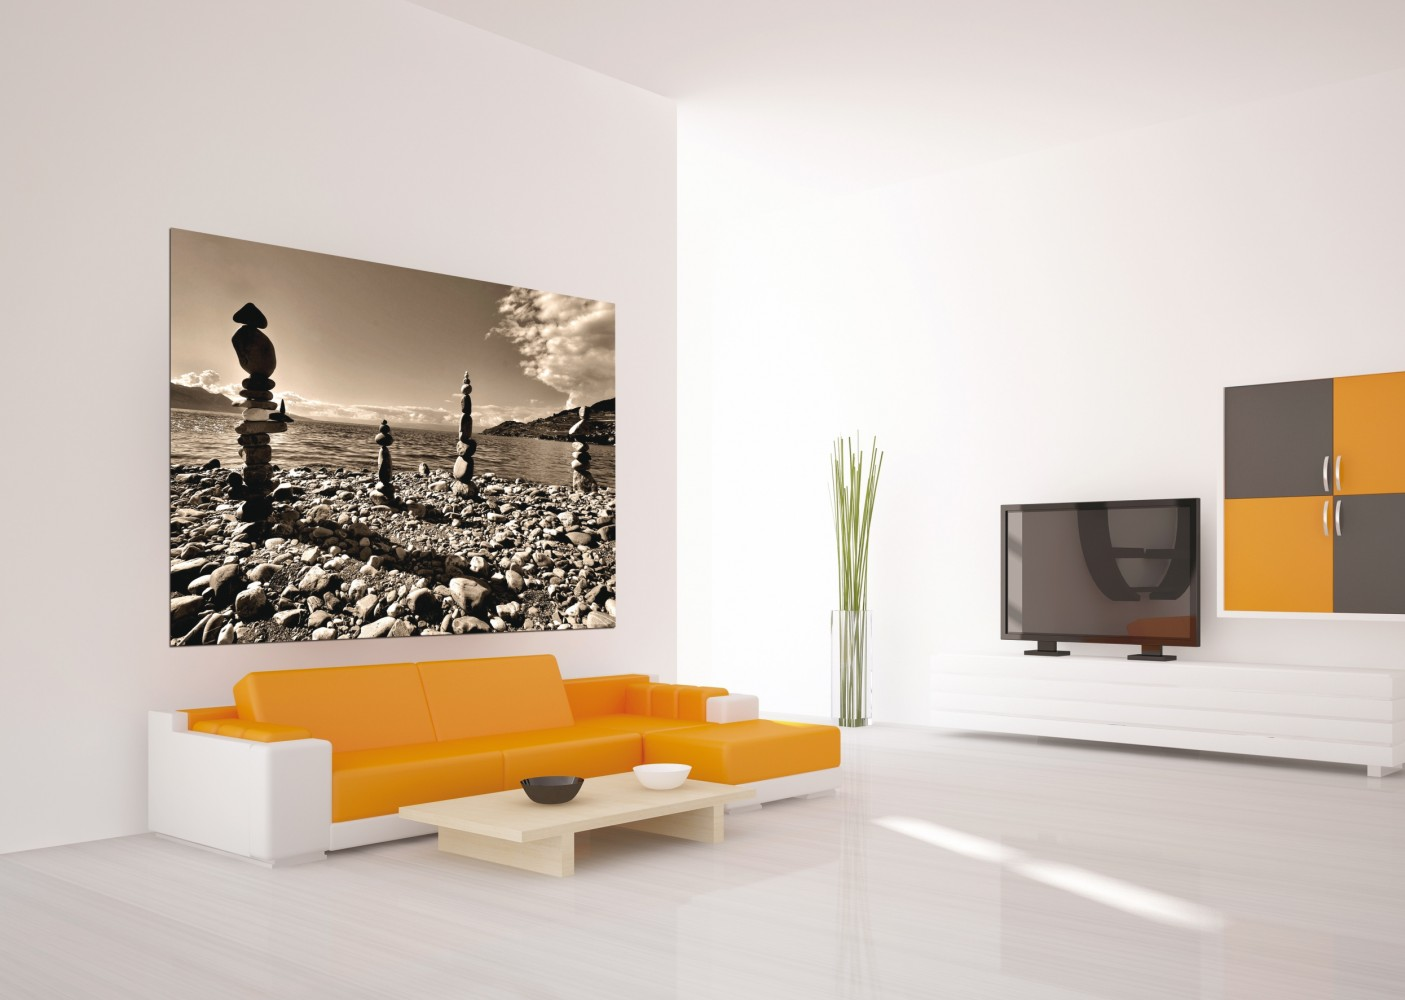 xxl poster fototapete tapete natur steine meer sepia foto 160 cm x 115 cm. Black Bedroom Furniture Sets. Home Design Ideas